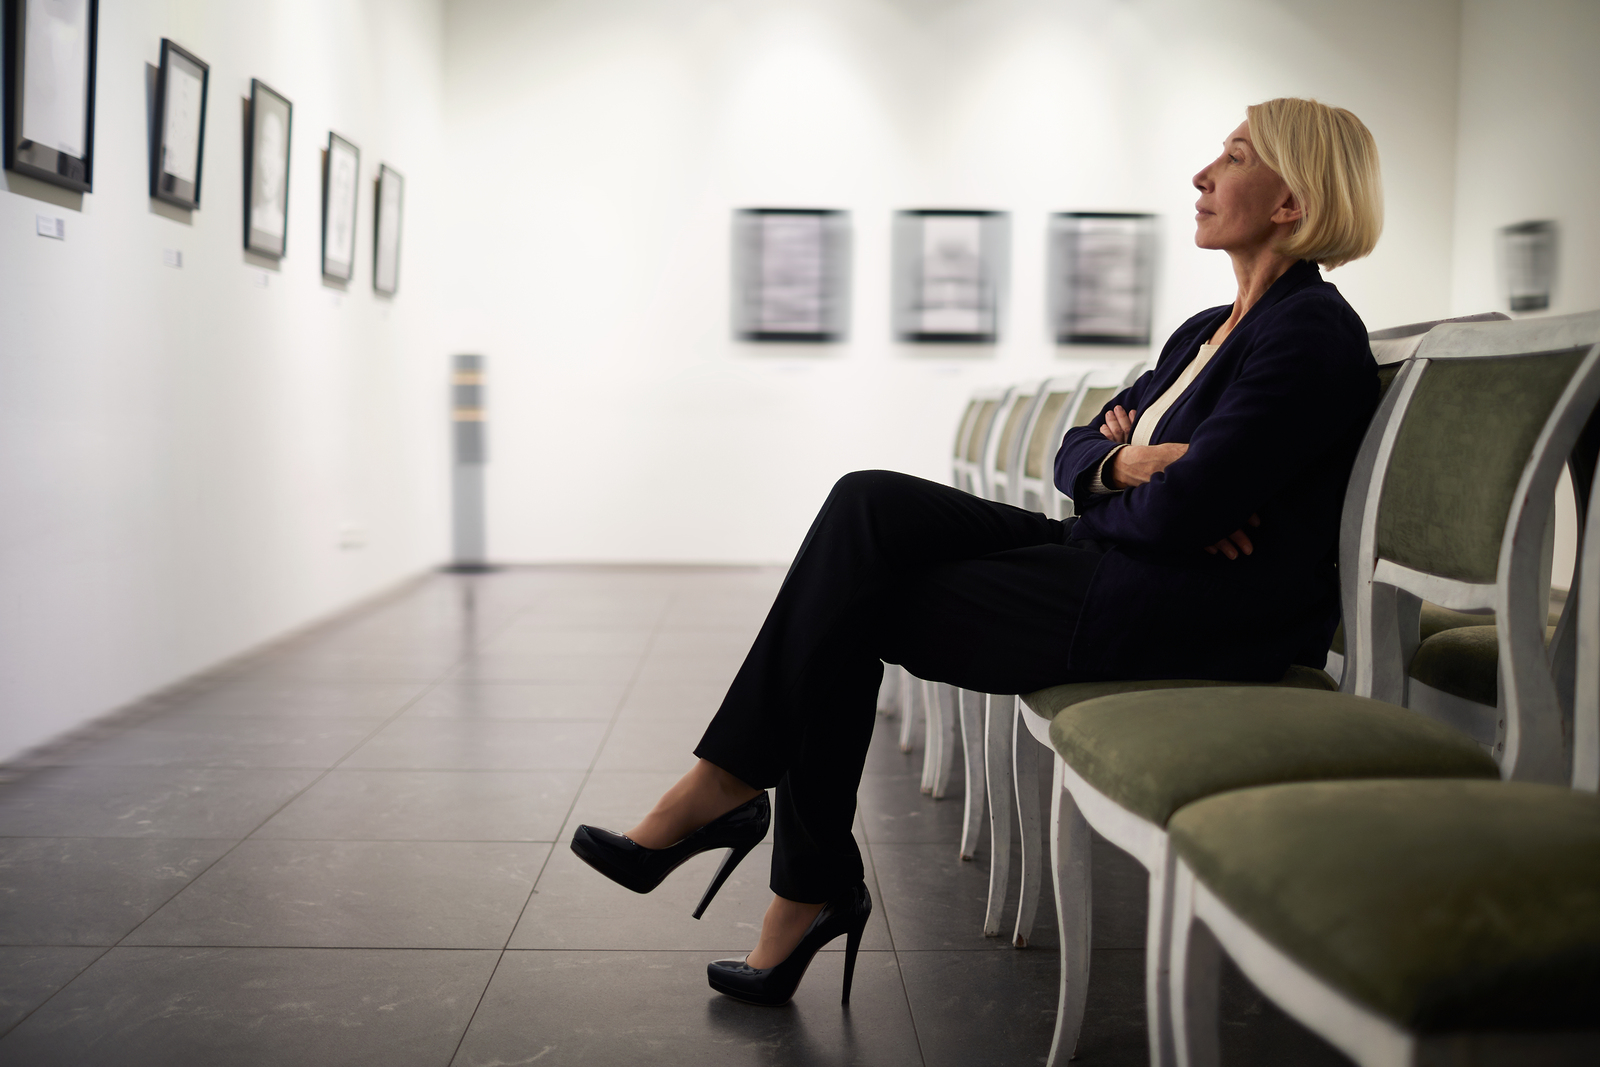 The Role of the Art Curator in the Contemporary Art World